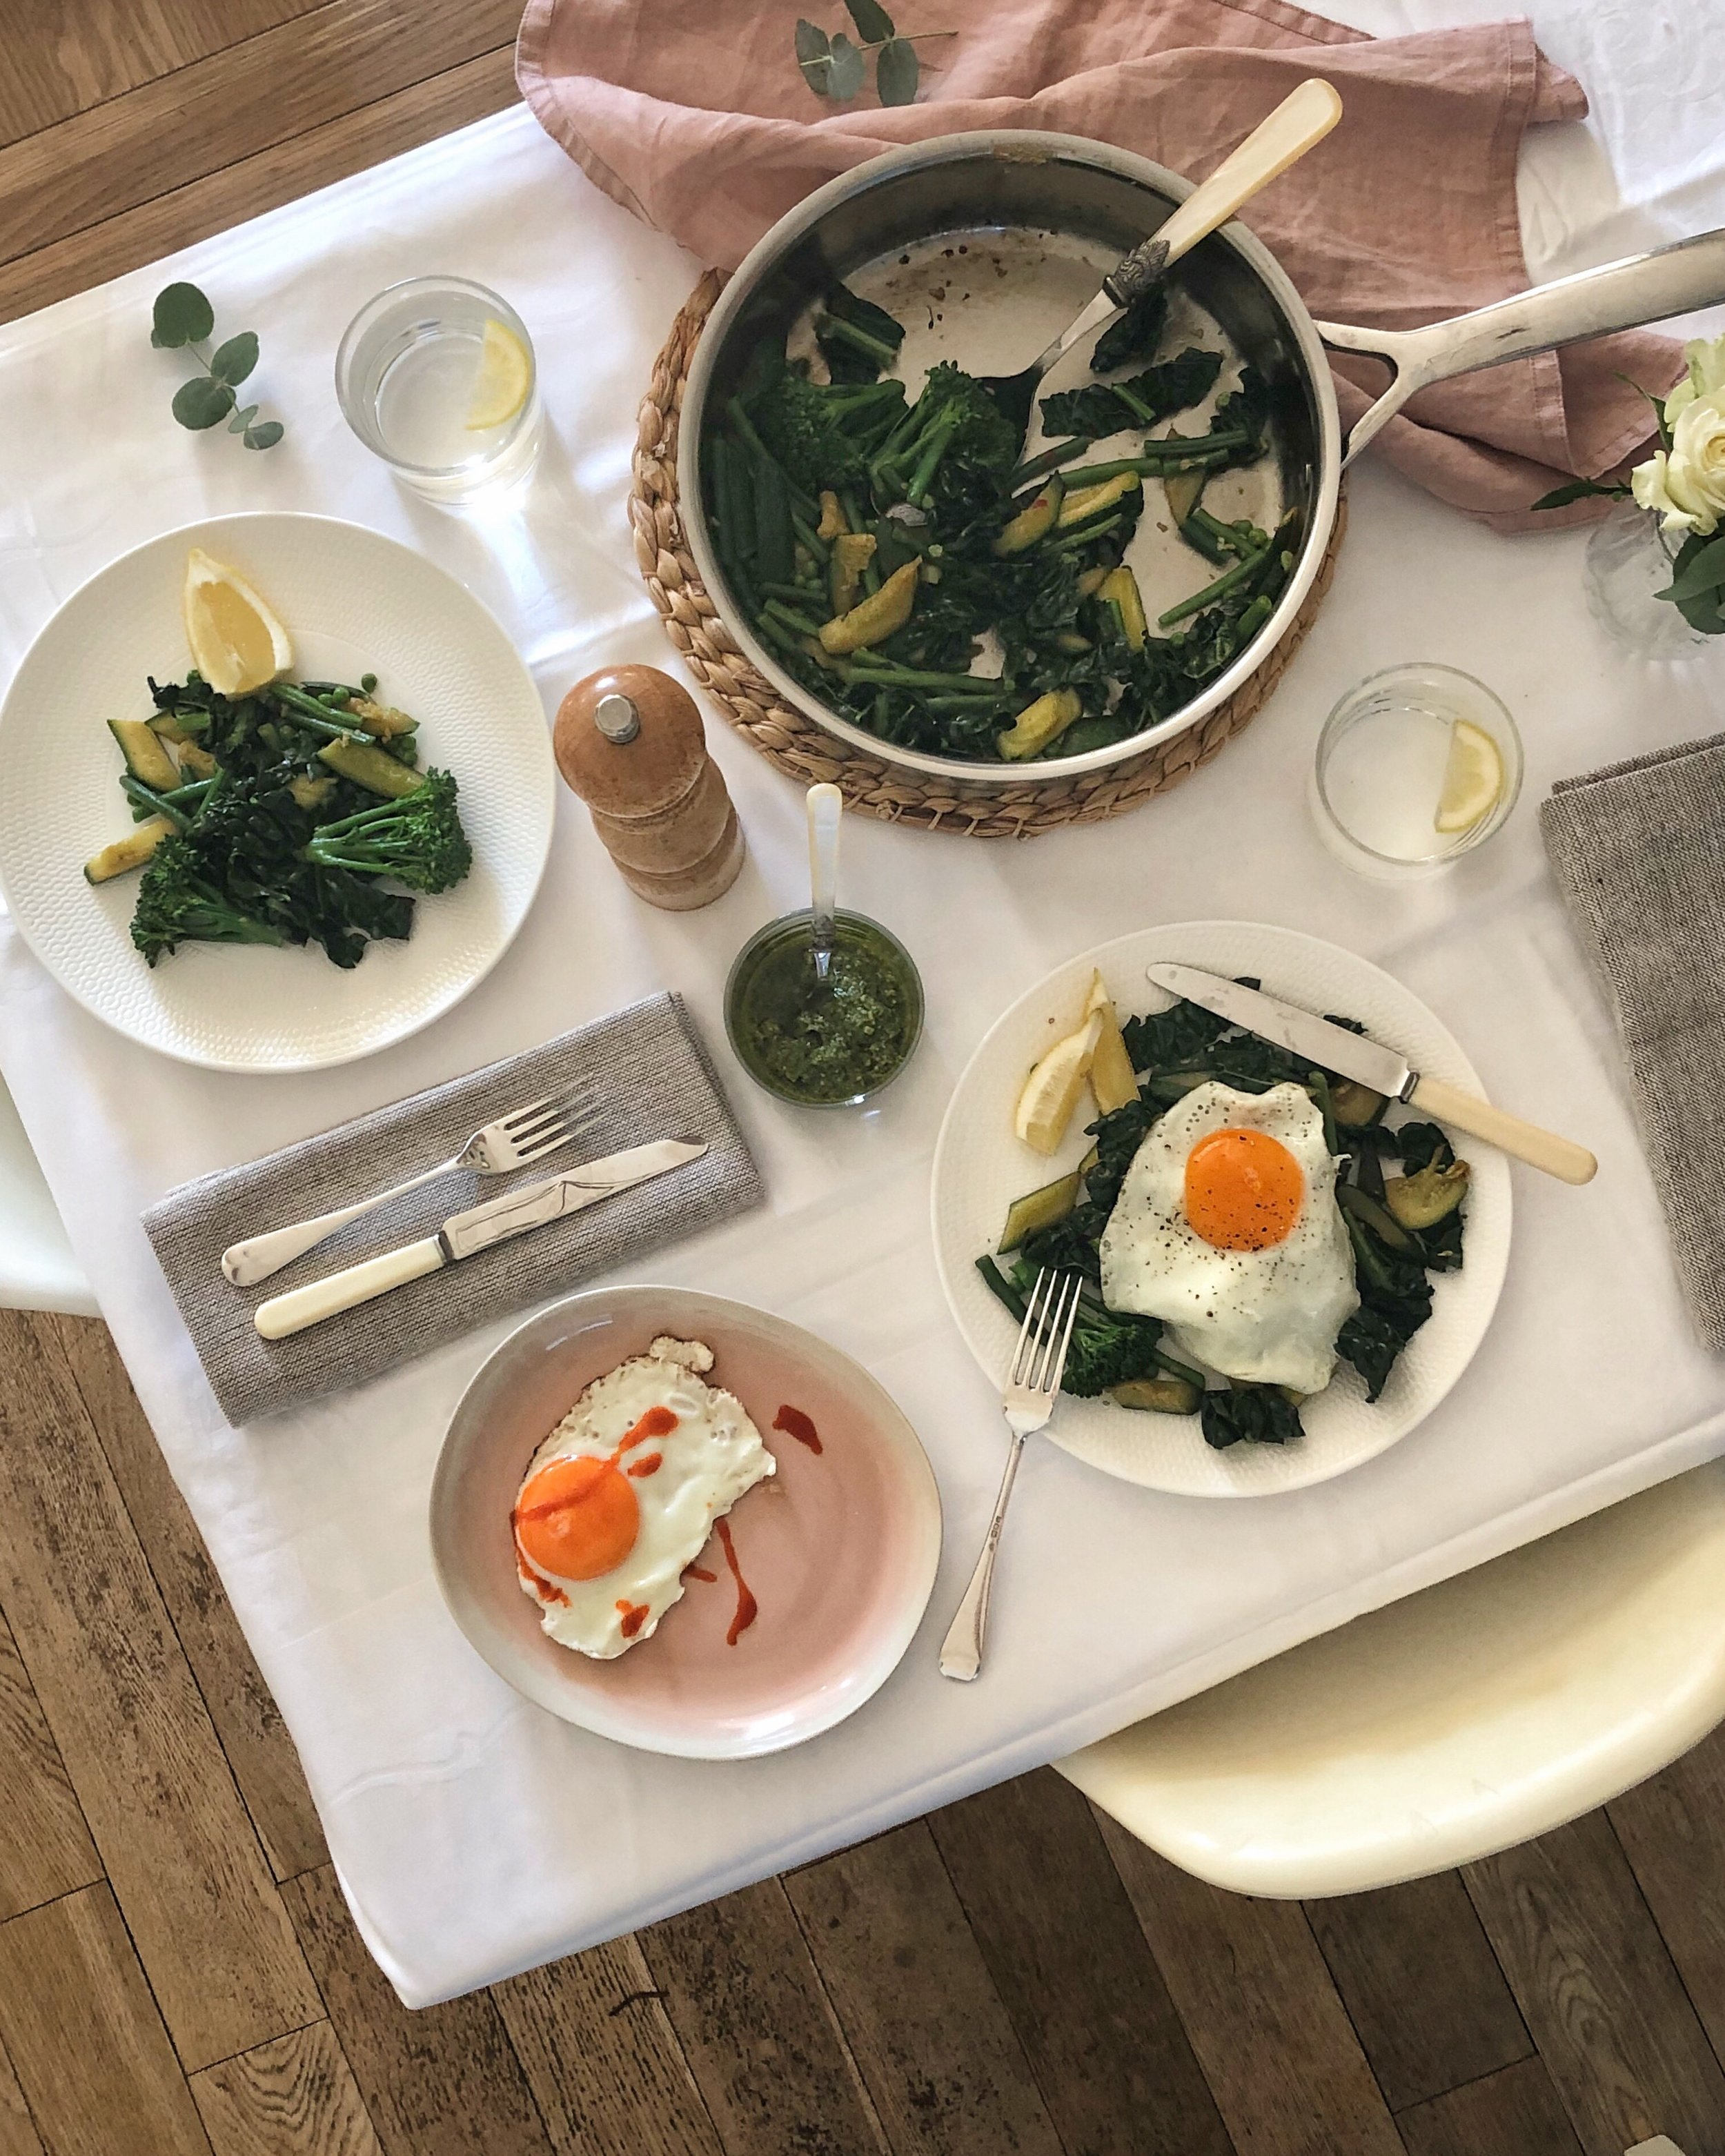 one pan greens with fried egg - Prue Leith - Desert Island Dishes - Margie Nomura - easy supper